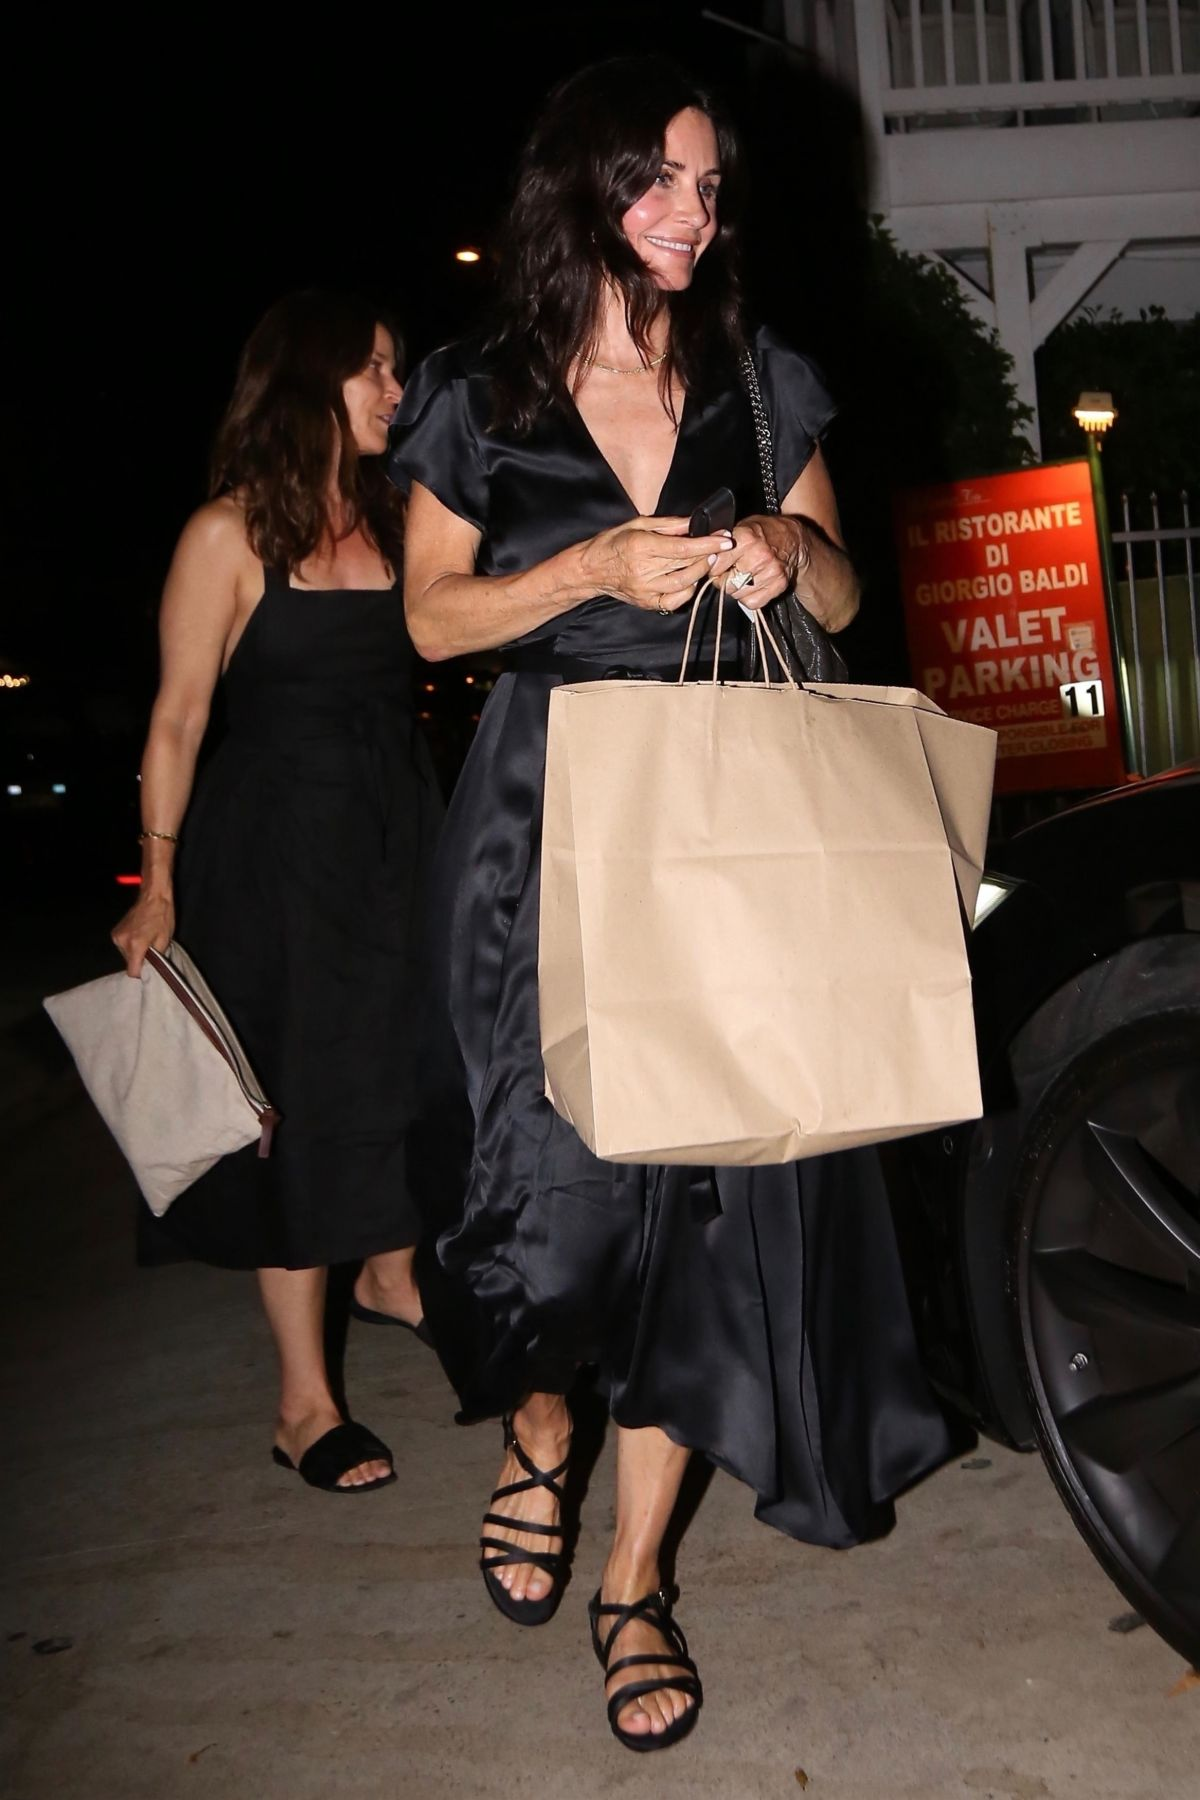 Courteney At Giorgio Baldi Restaurant In Pacific Palisades 07 12 2018